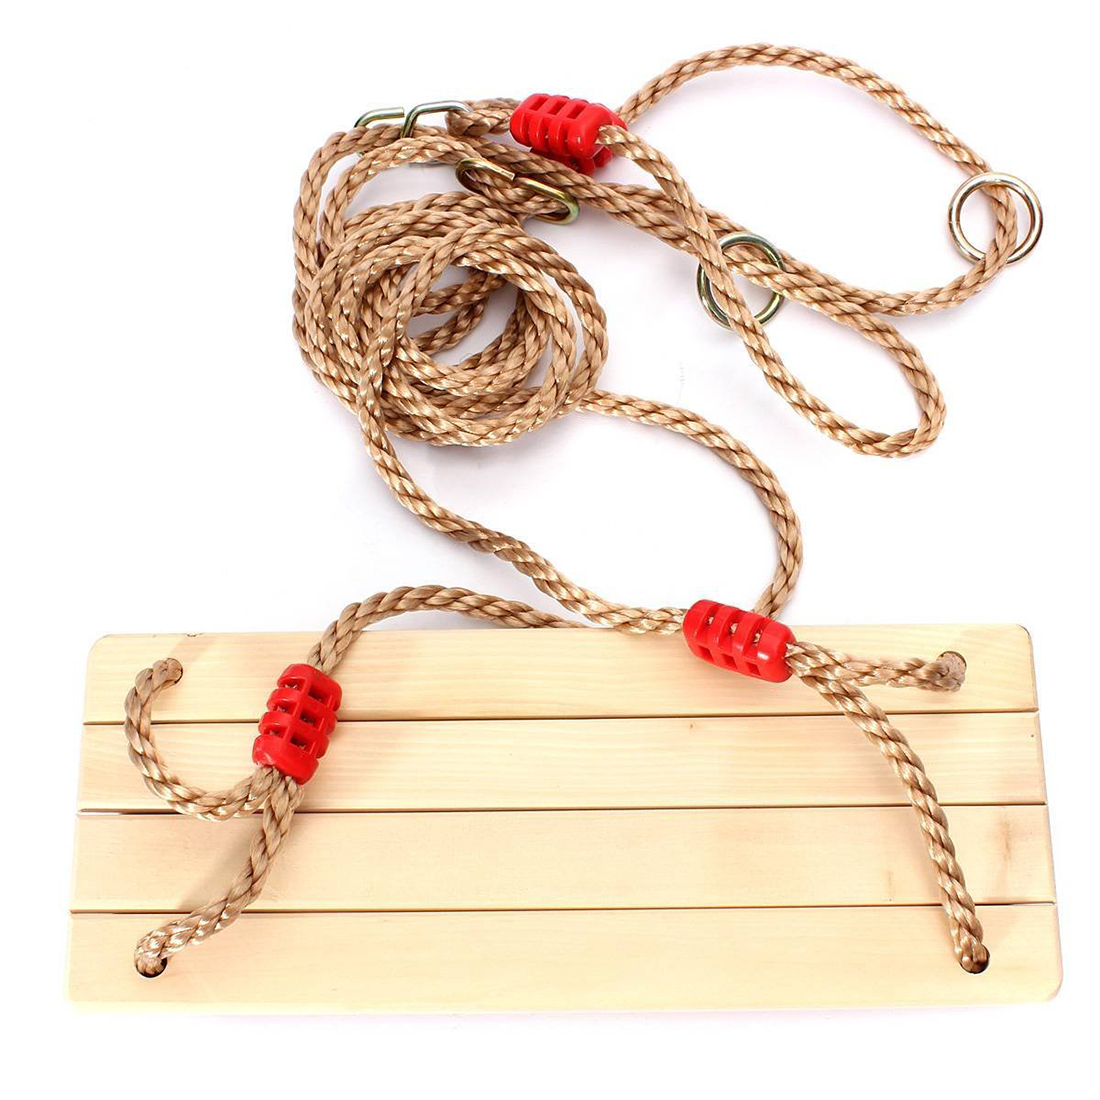 Adults And Children Swinging Swings Wooden Swing With Rope